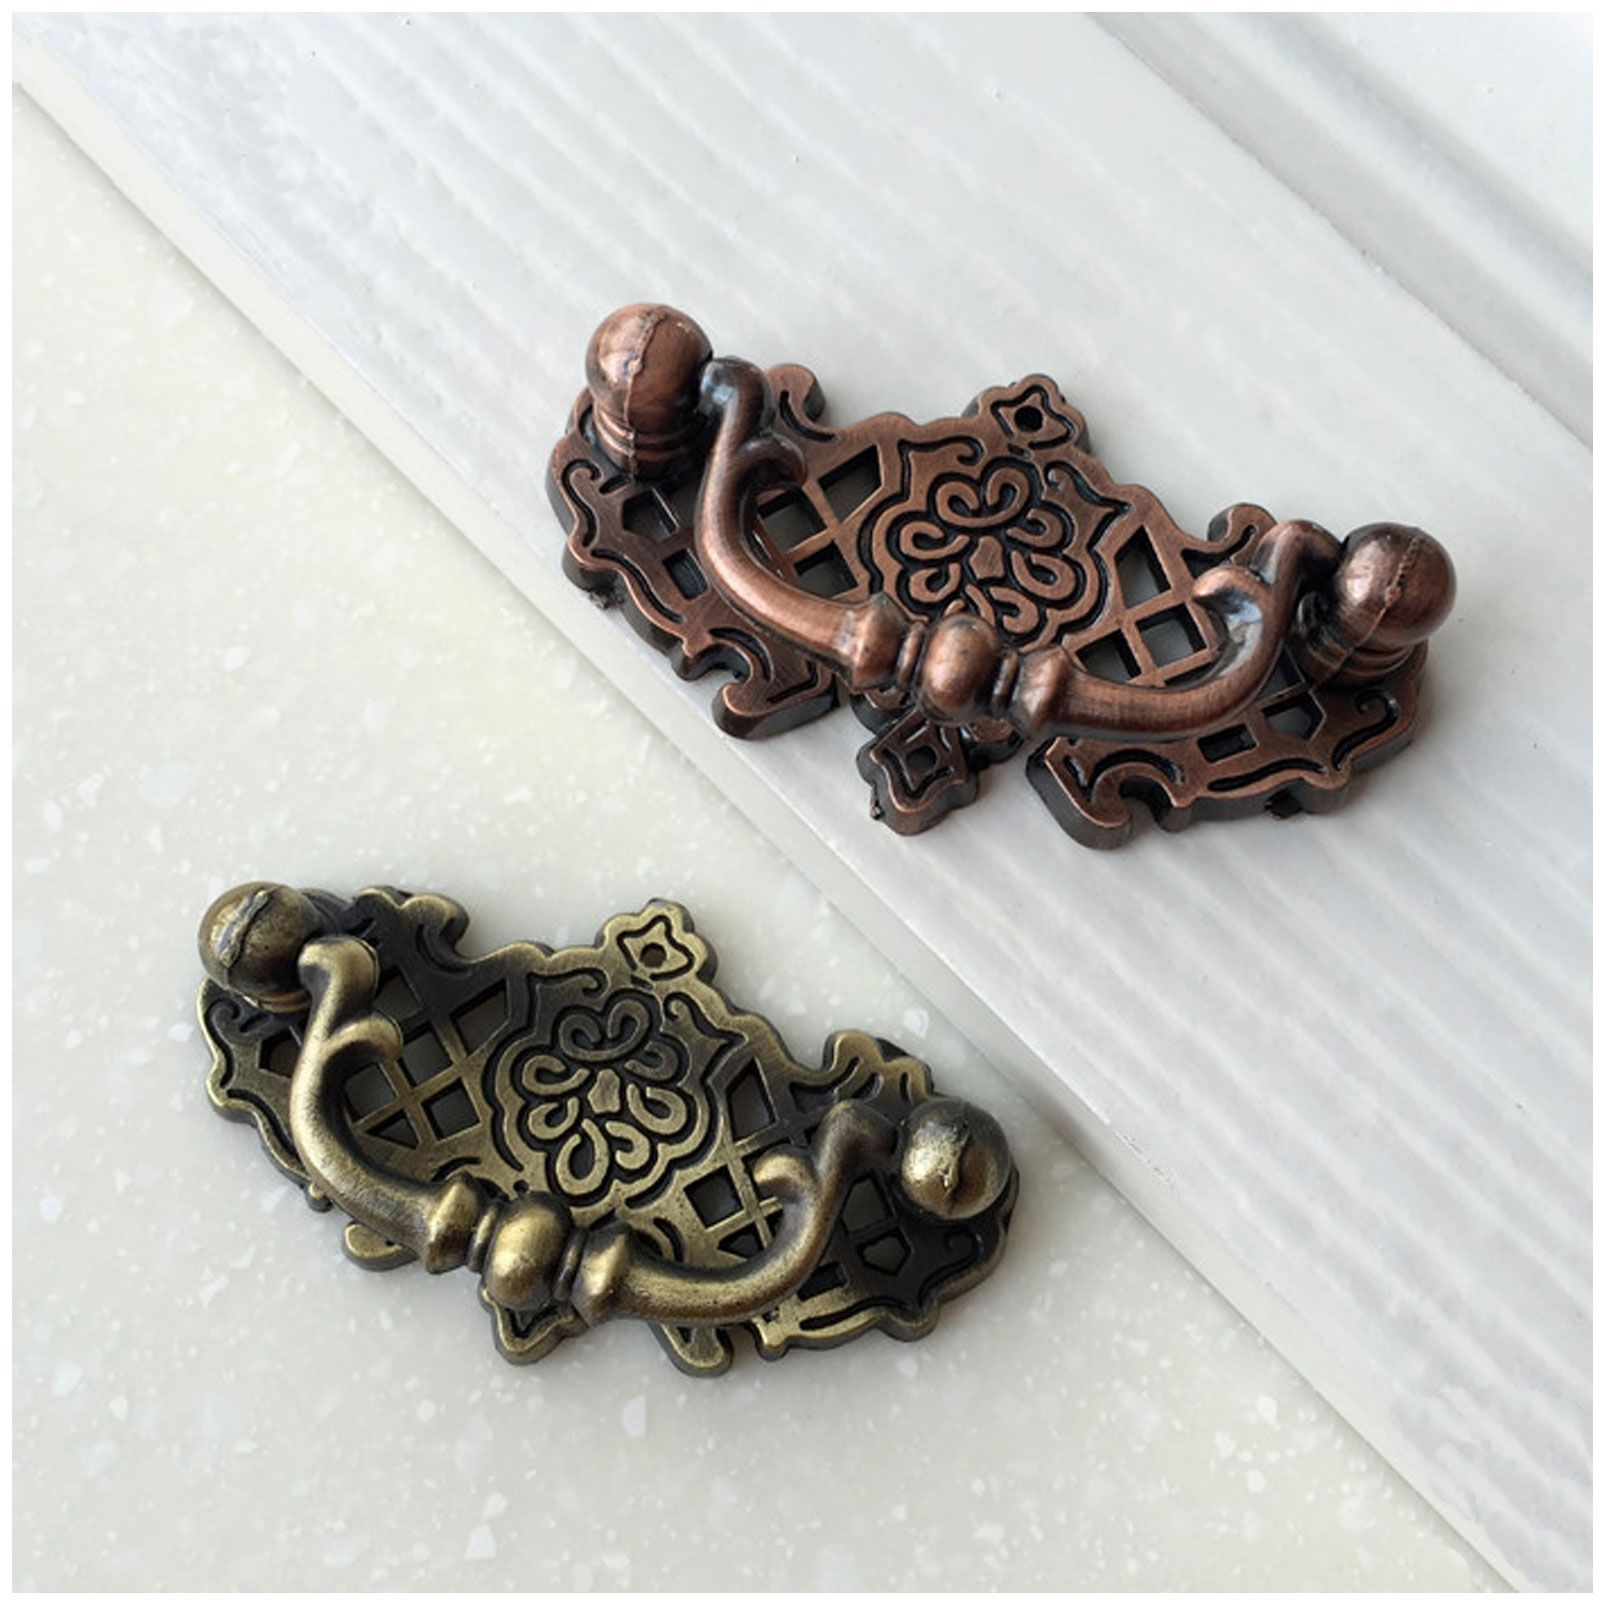 Vintage style drawer pulls and knobs antique copperbronze finish in